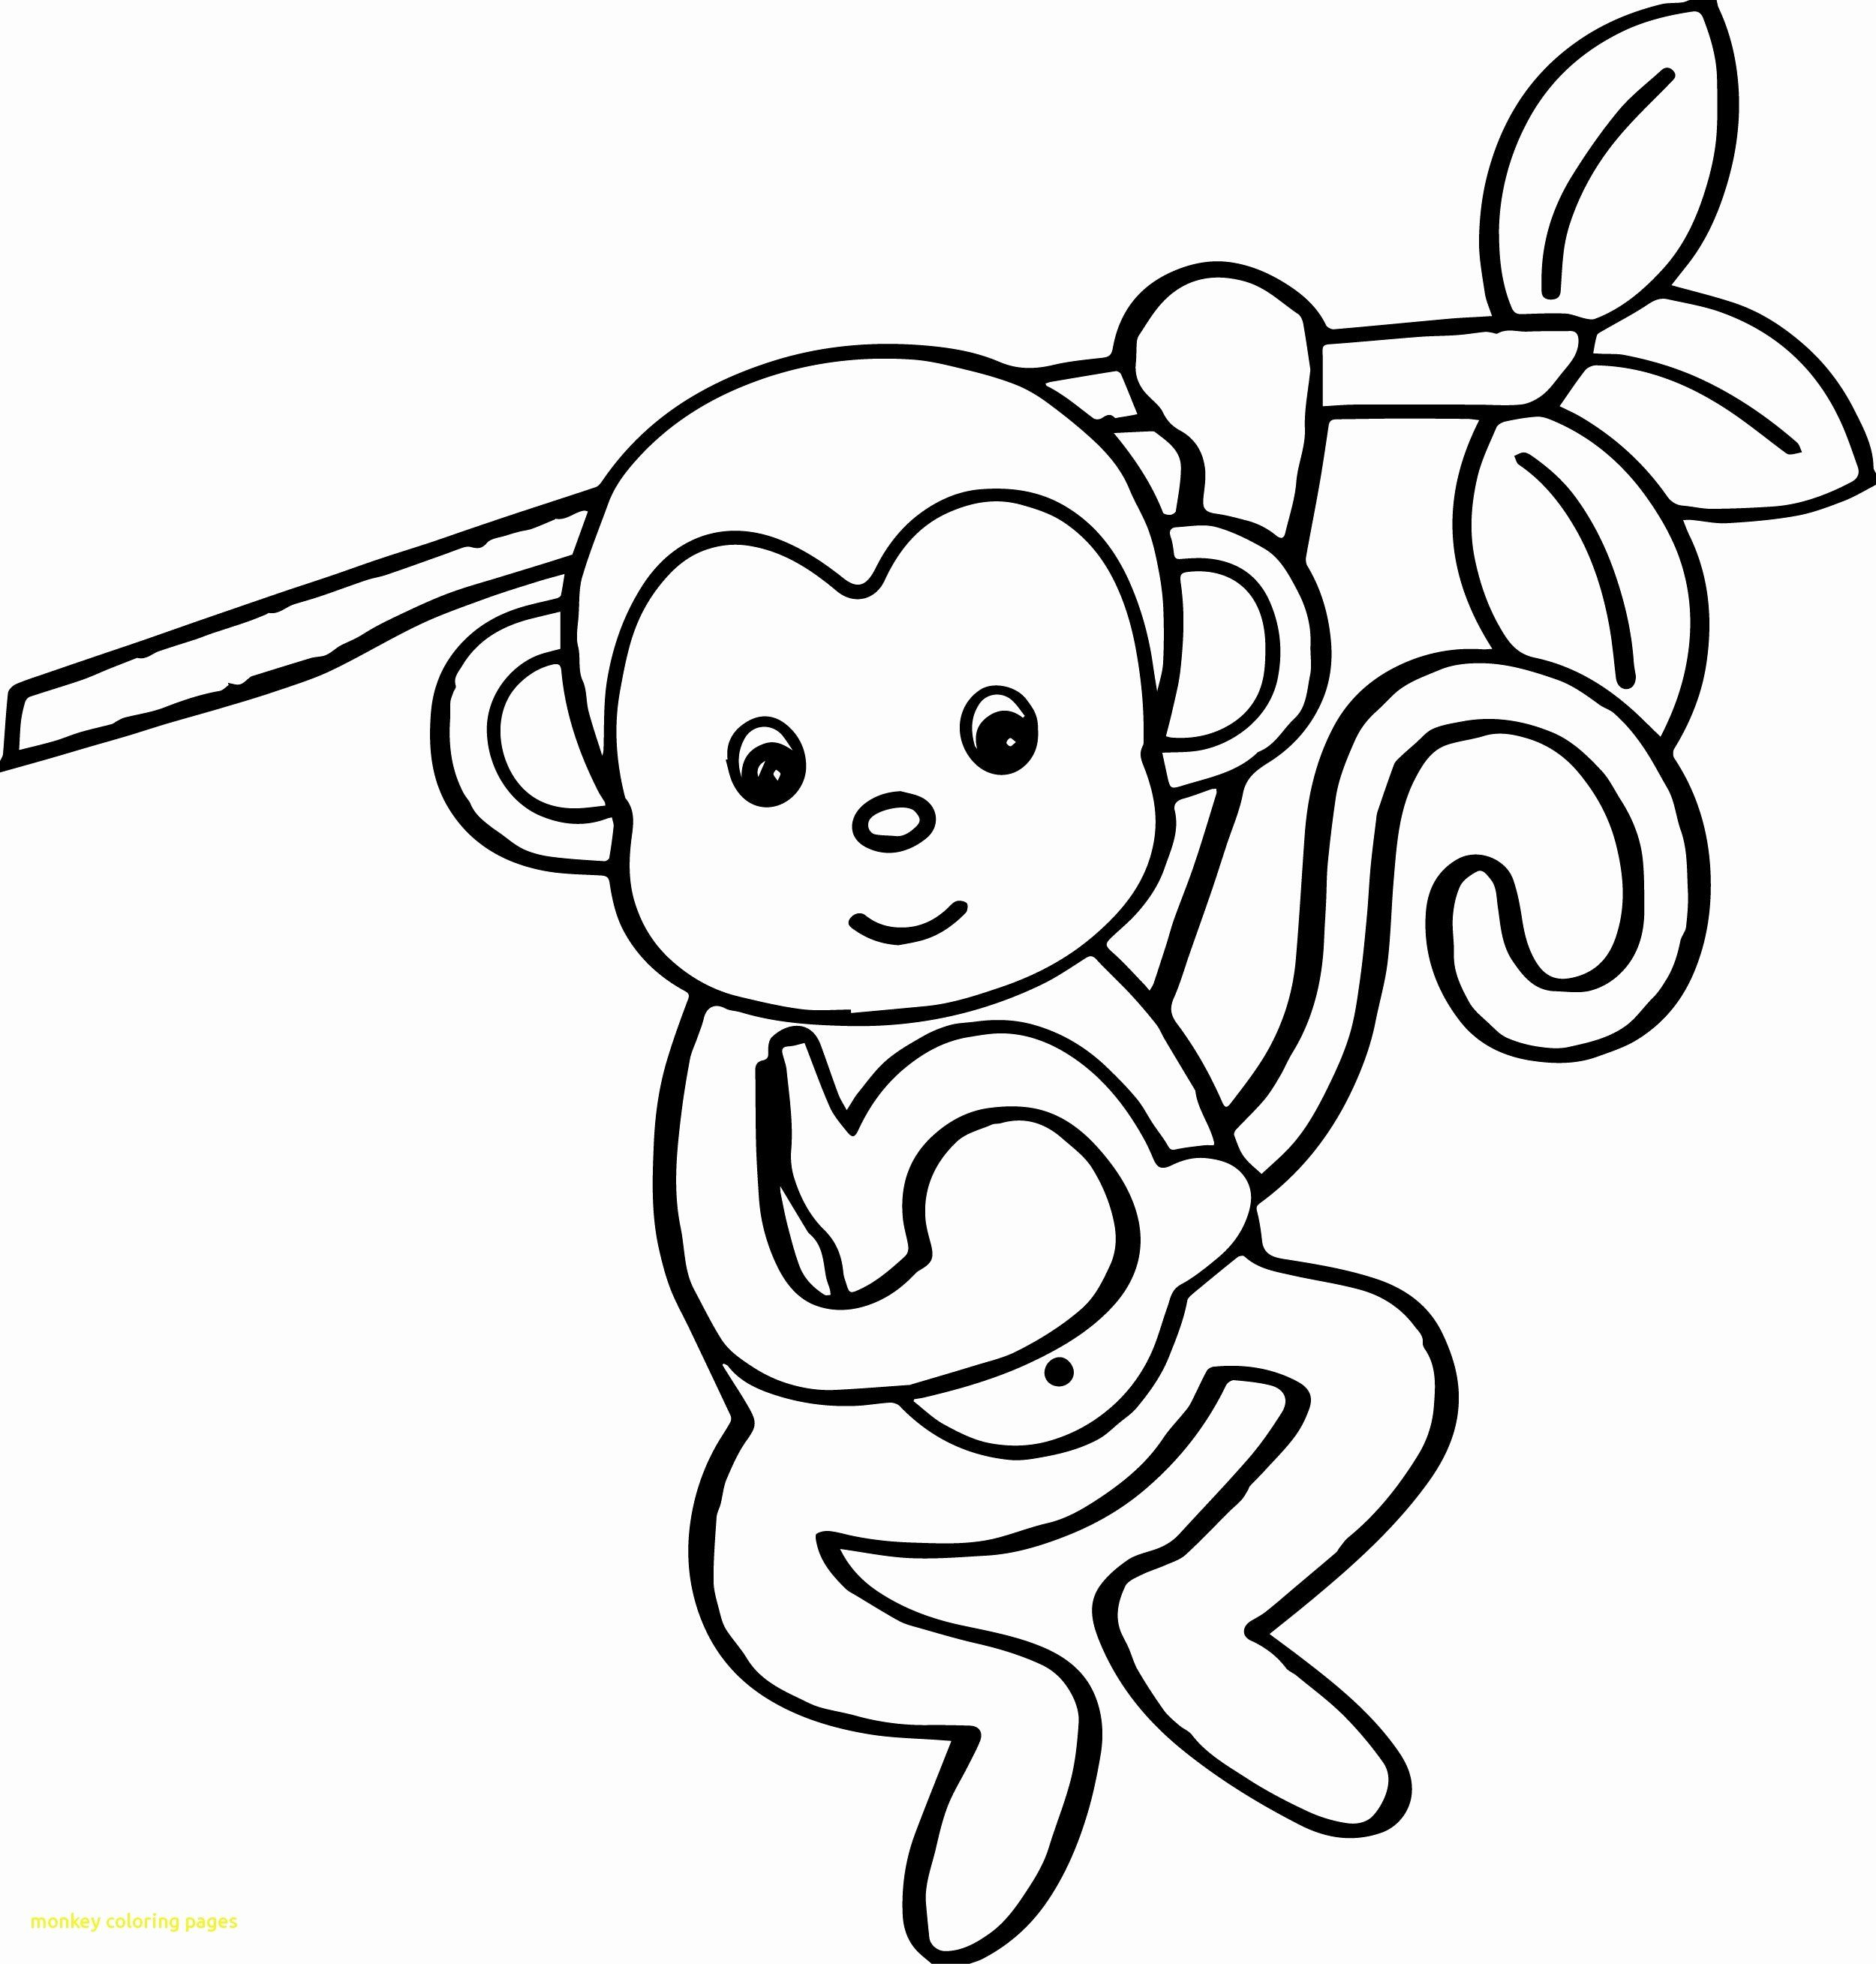 Coloring Pages On Monkeys Awesome Archive With Tag Monkey Puzzle Colouring Pages Animal Coloring Pages Monkey Coloring Pages Cartoon Coloring Pages